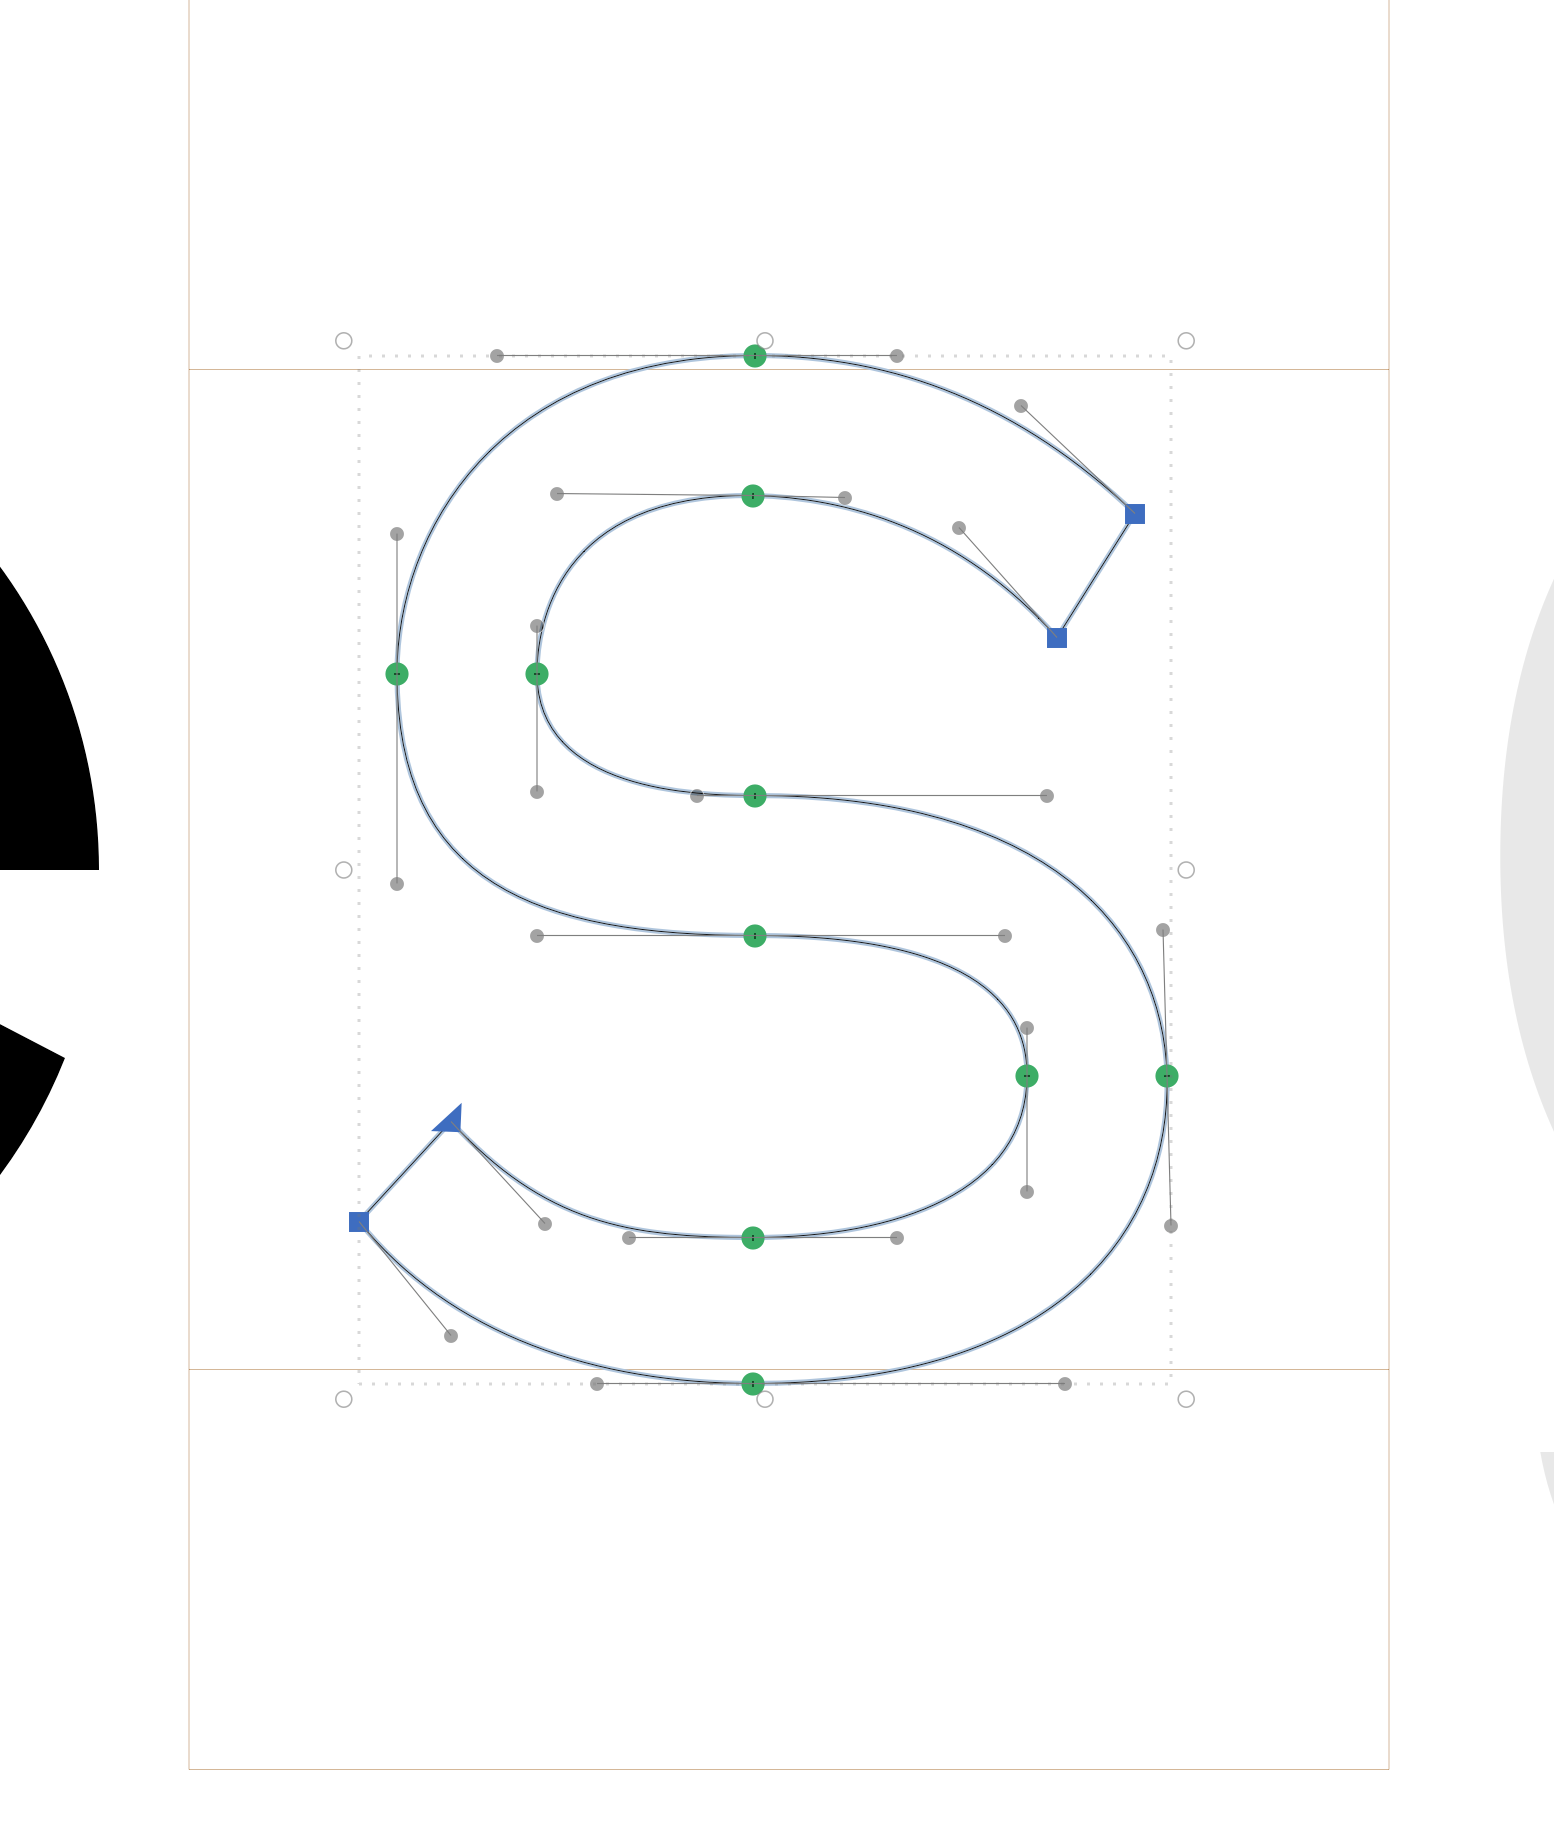 Designing S is painful